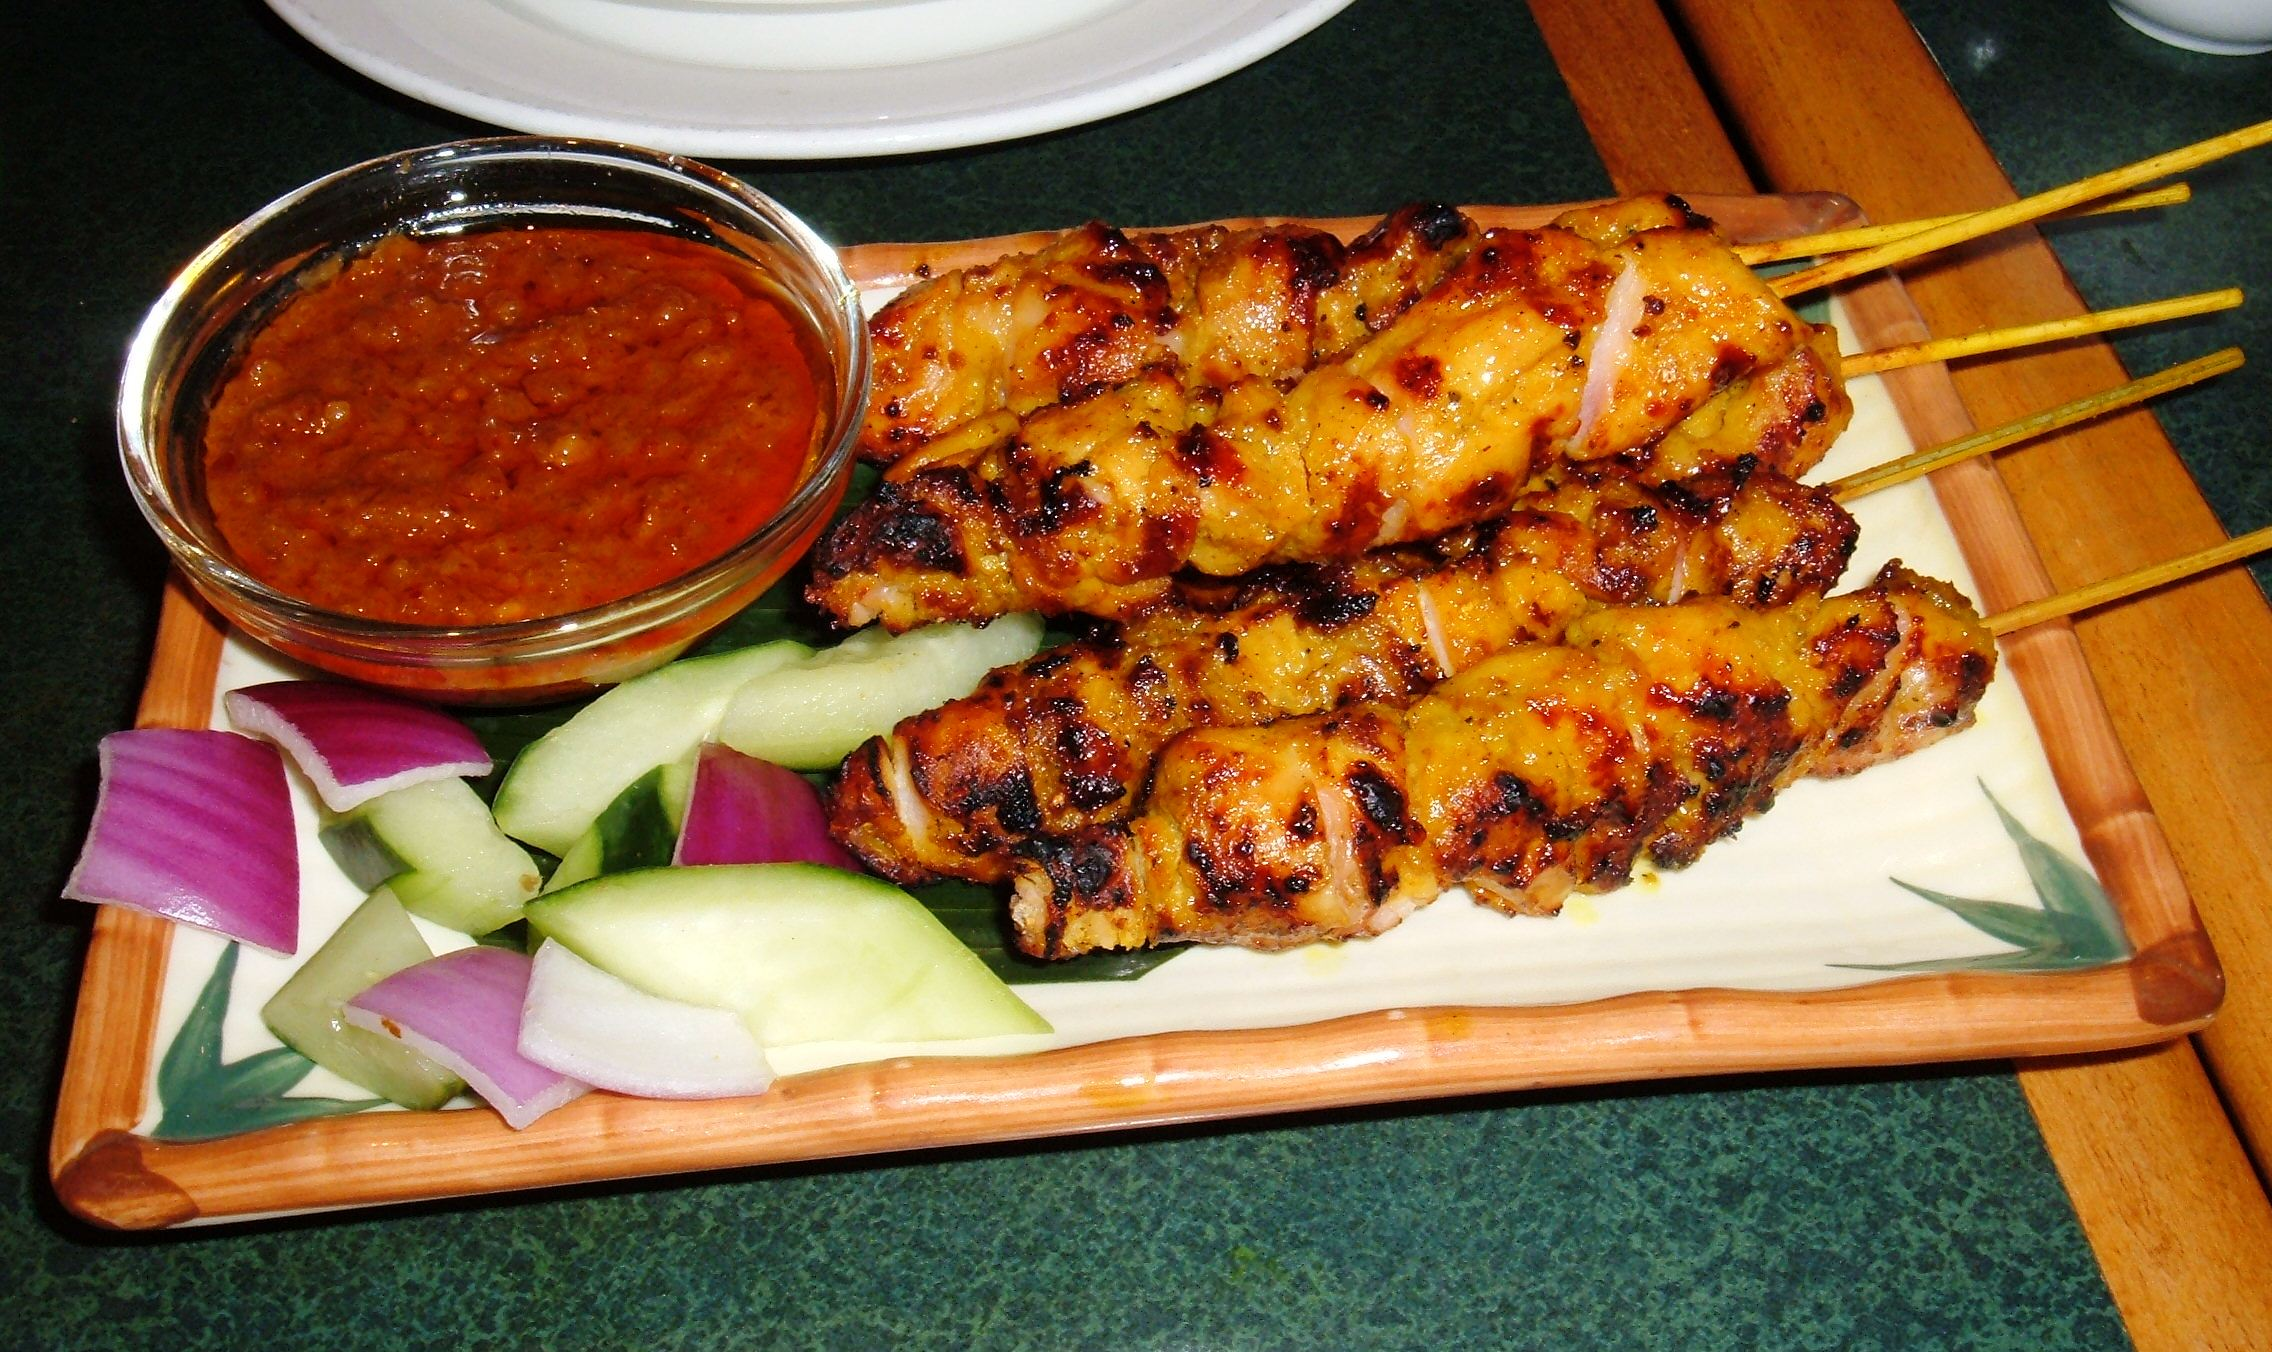 File:Satay chicken.JPG - Wikimedia Commons